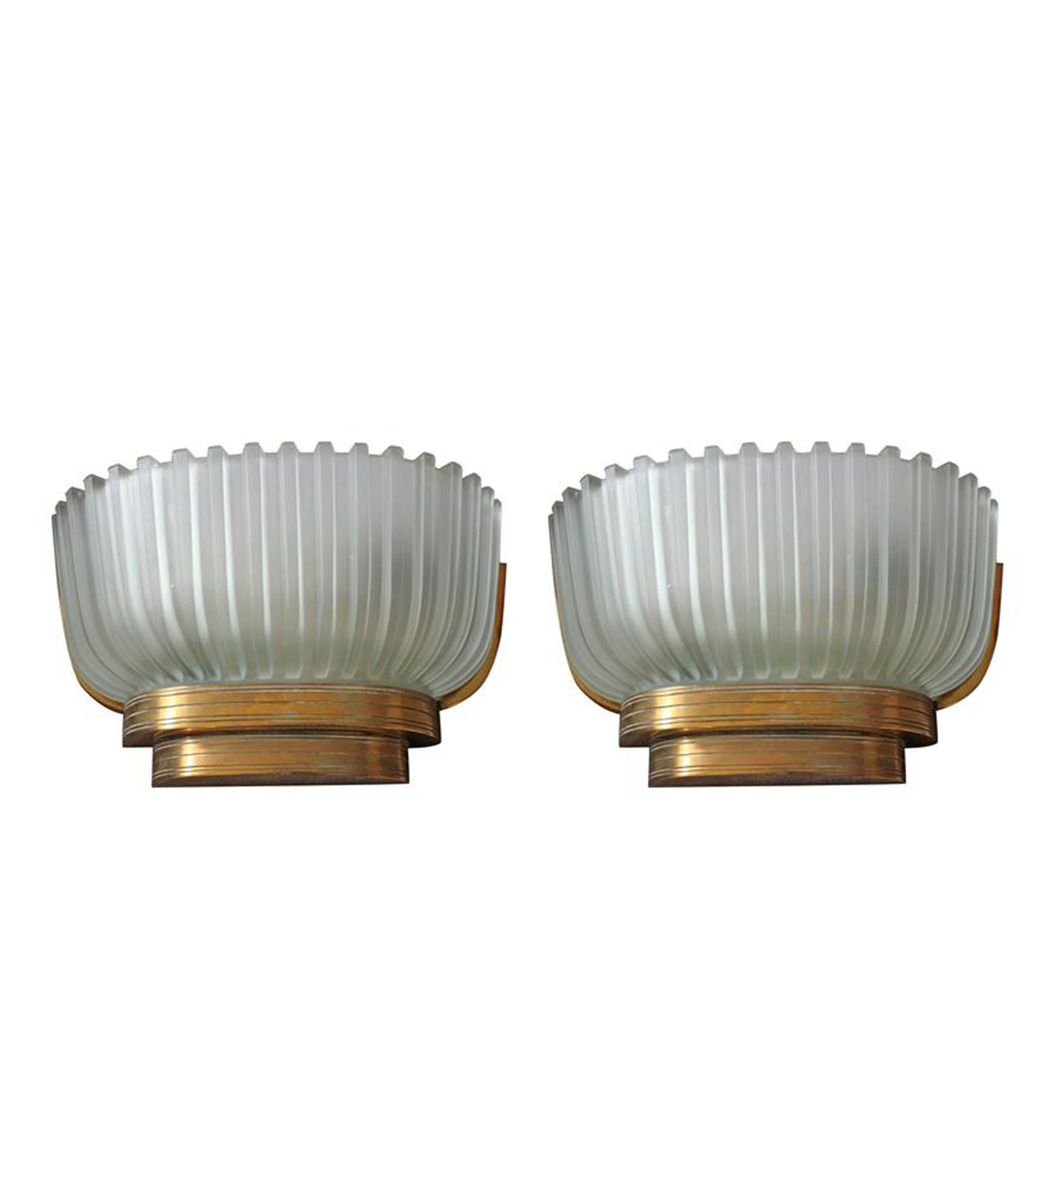 Italian Glass and Brass Wall Lights, 1940s, Set of 2 for sale at Pamono